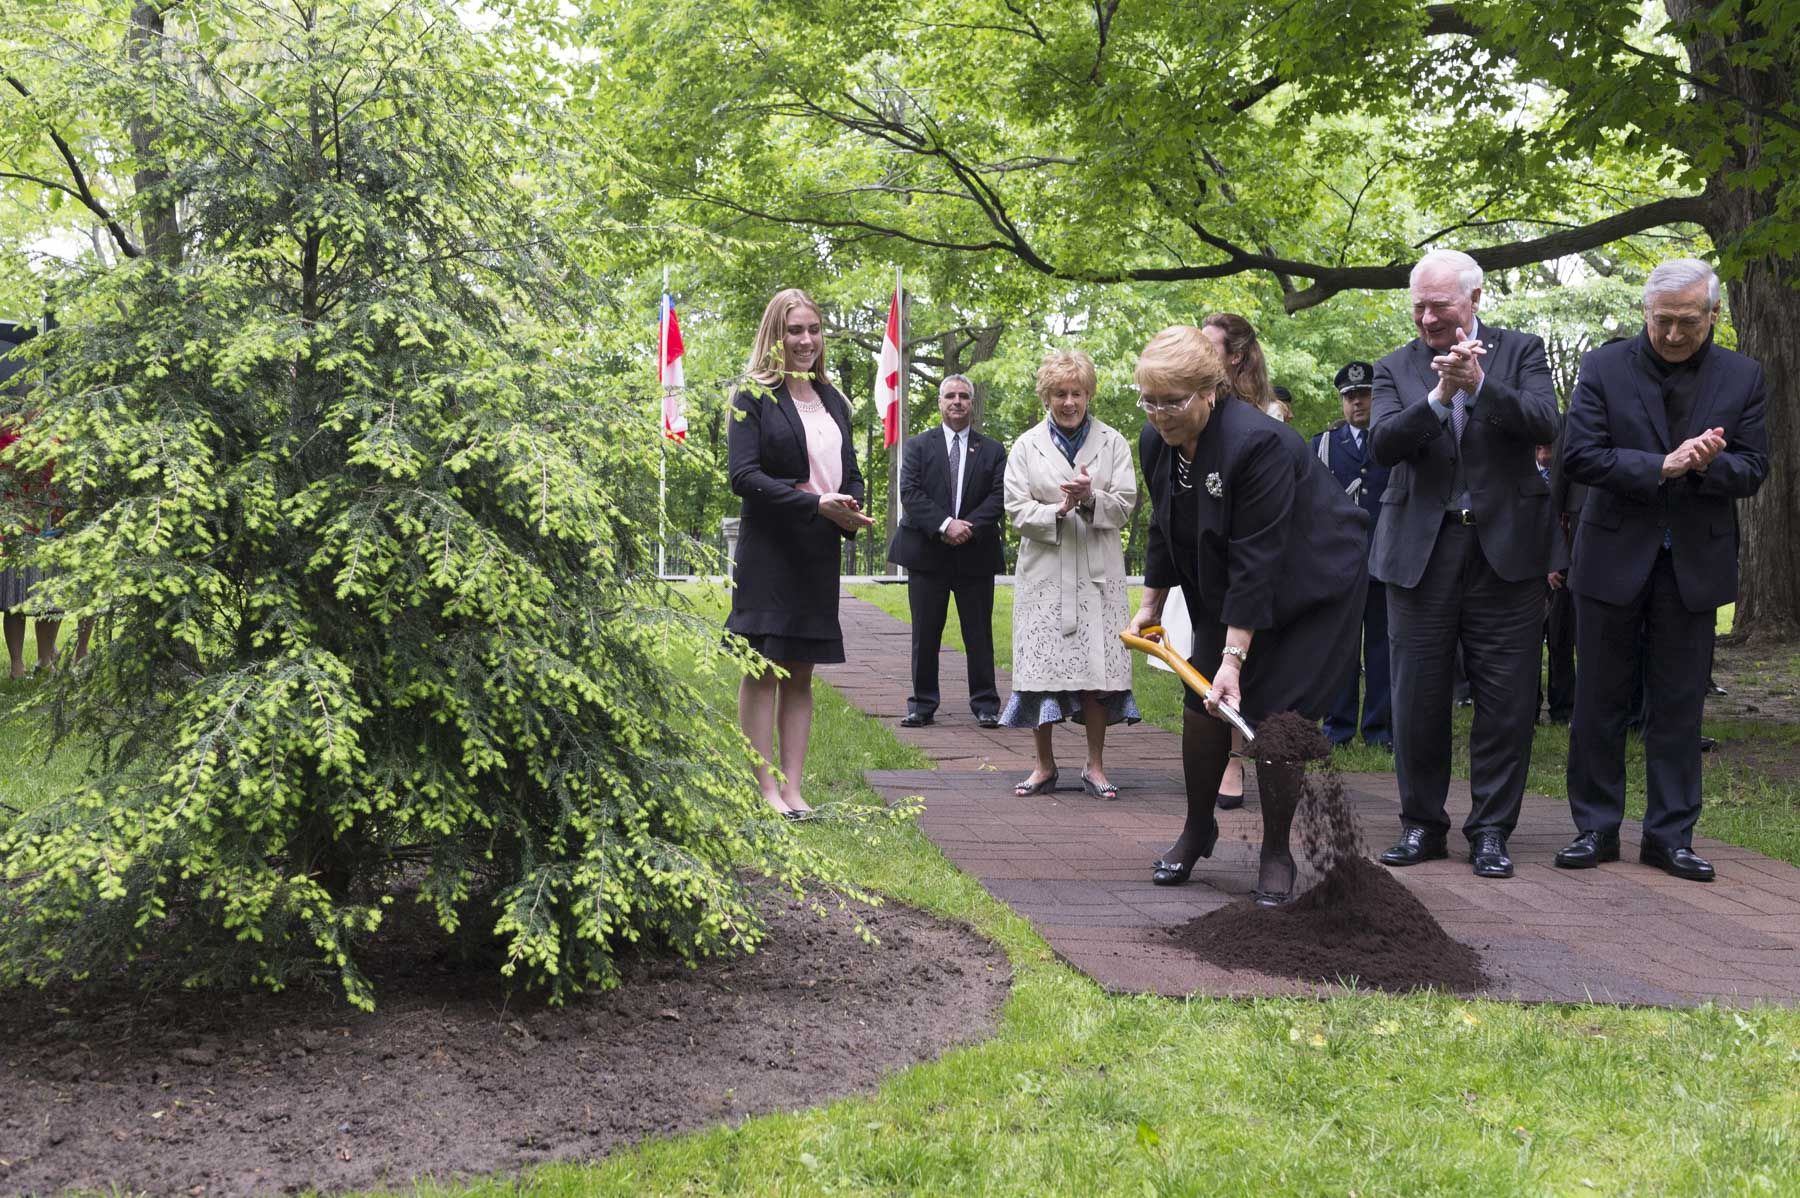 President Bachelet planted an Eastern Hemlock, as a living symbol of the close ties between Canada and Chile.